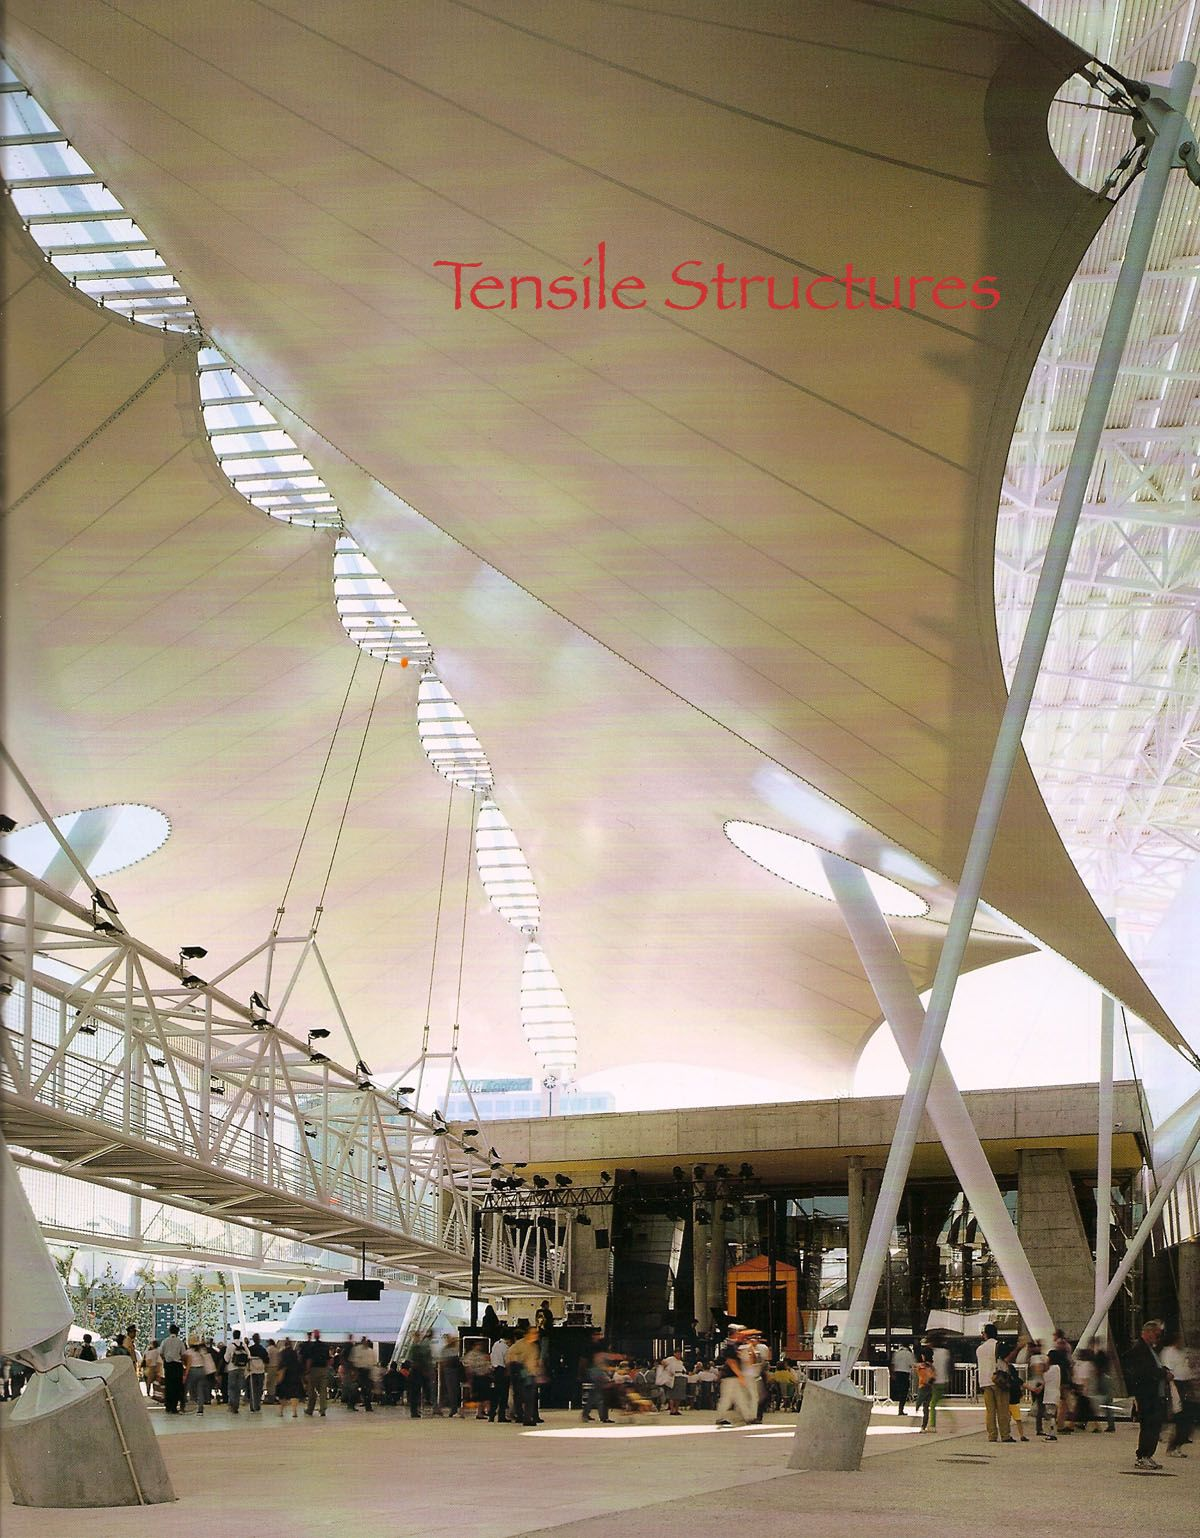 Tensile Structures Potential Roof Architecture